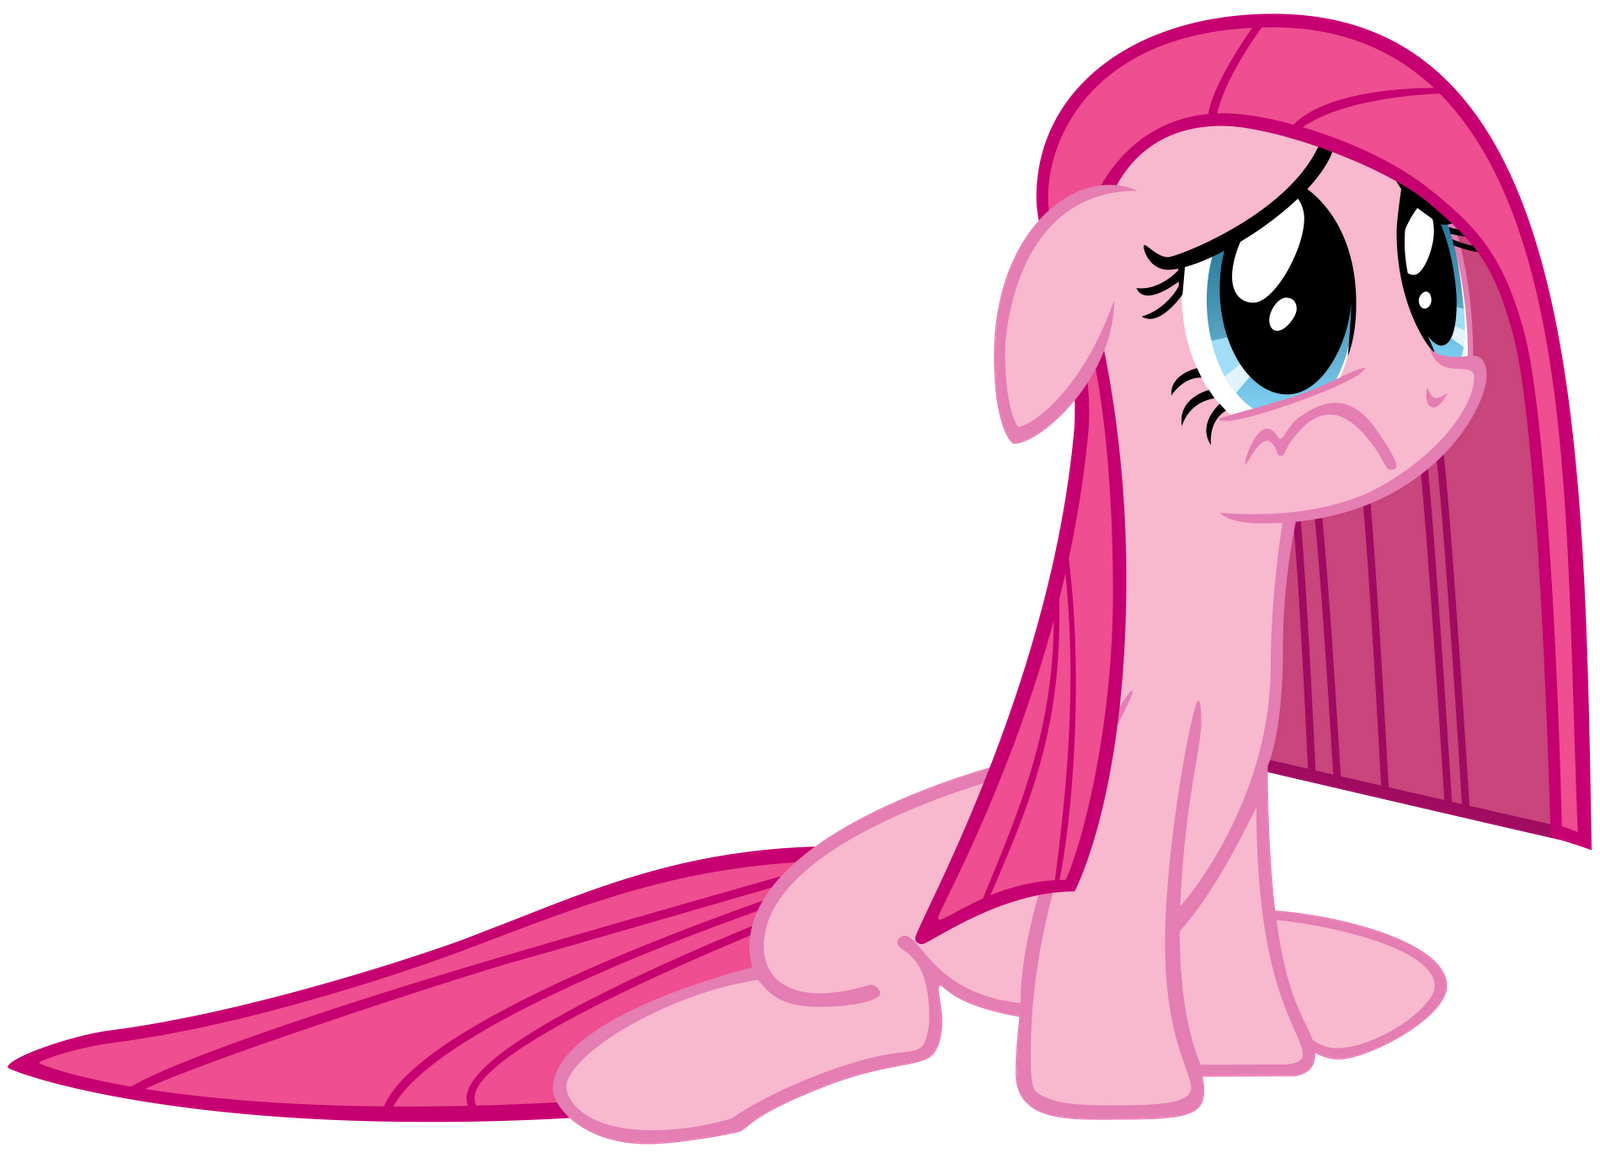 Pinkie Pie CreepyPasta Which Pinkie creepy pasta would be more creepy    Pinkie Pie Creepypasta